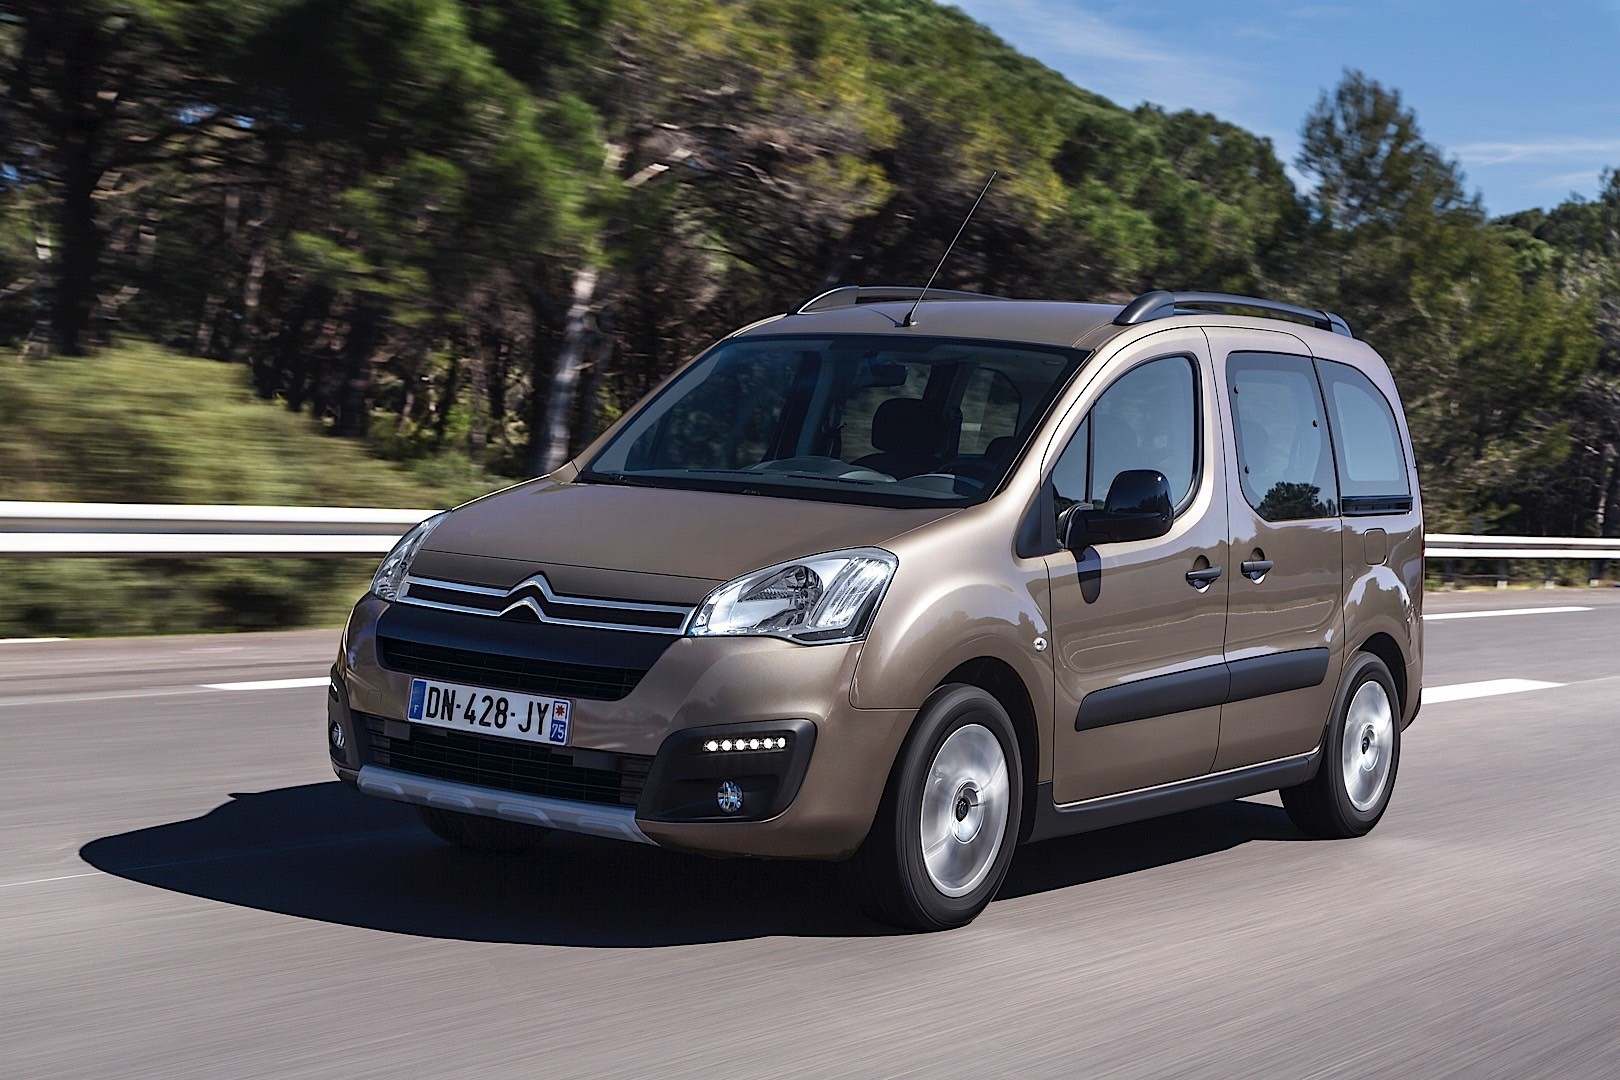 citroen berlingo specs 2012 2013 2014 2015. Black Bedroom Furniture Sets. Home Design Ideas